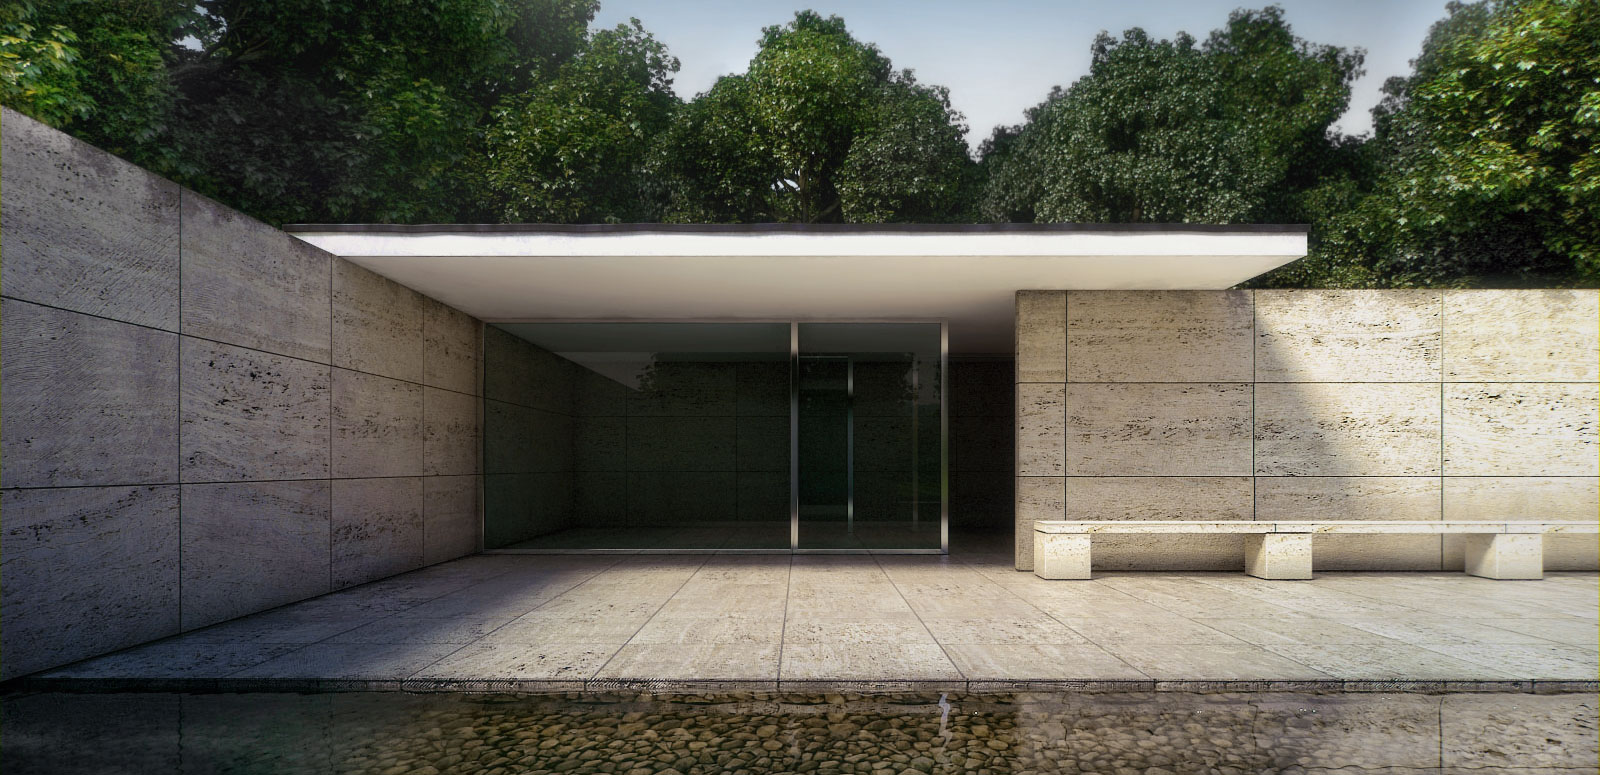 my magical attic barcelona pavilion design by ludwig mies van der rohe 1929 ludwig mies van der rohe 1929